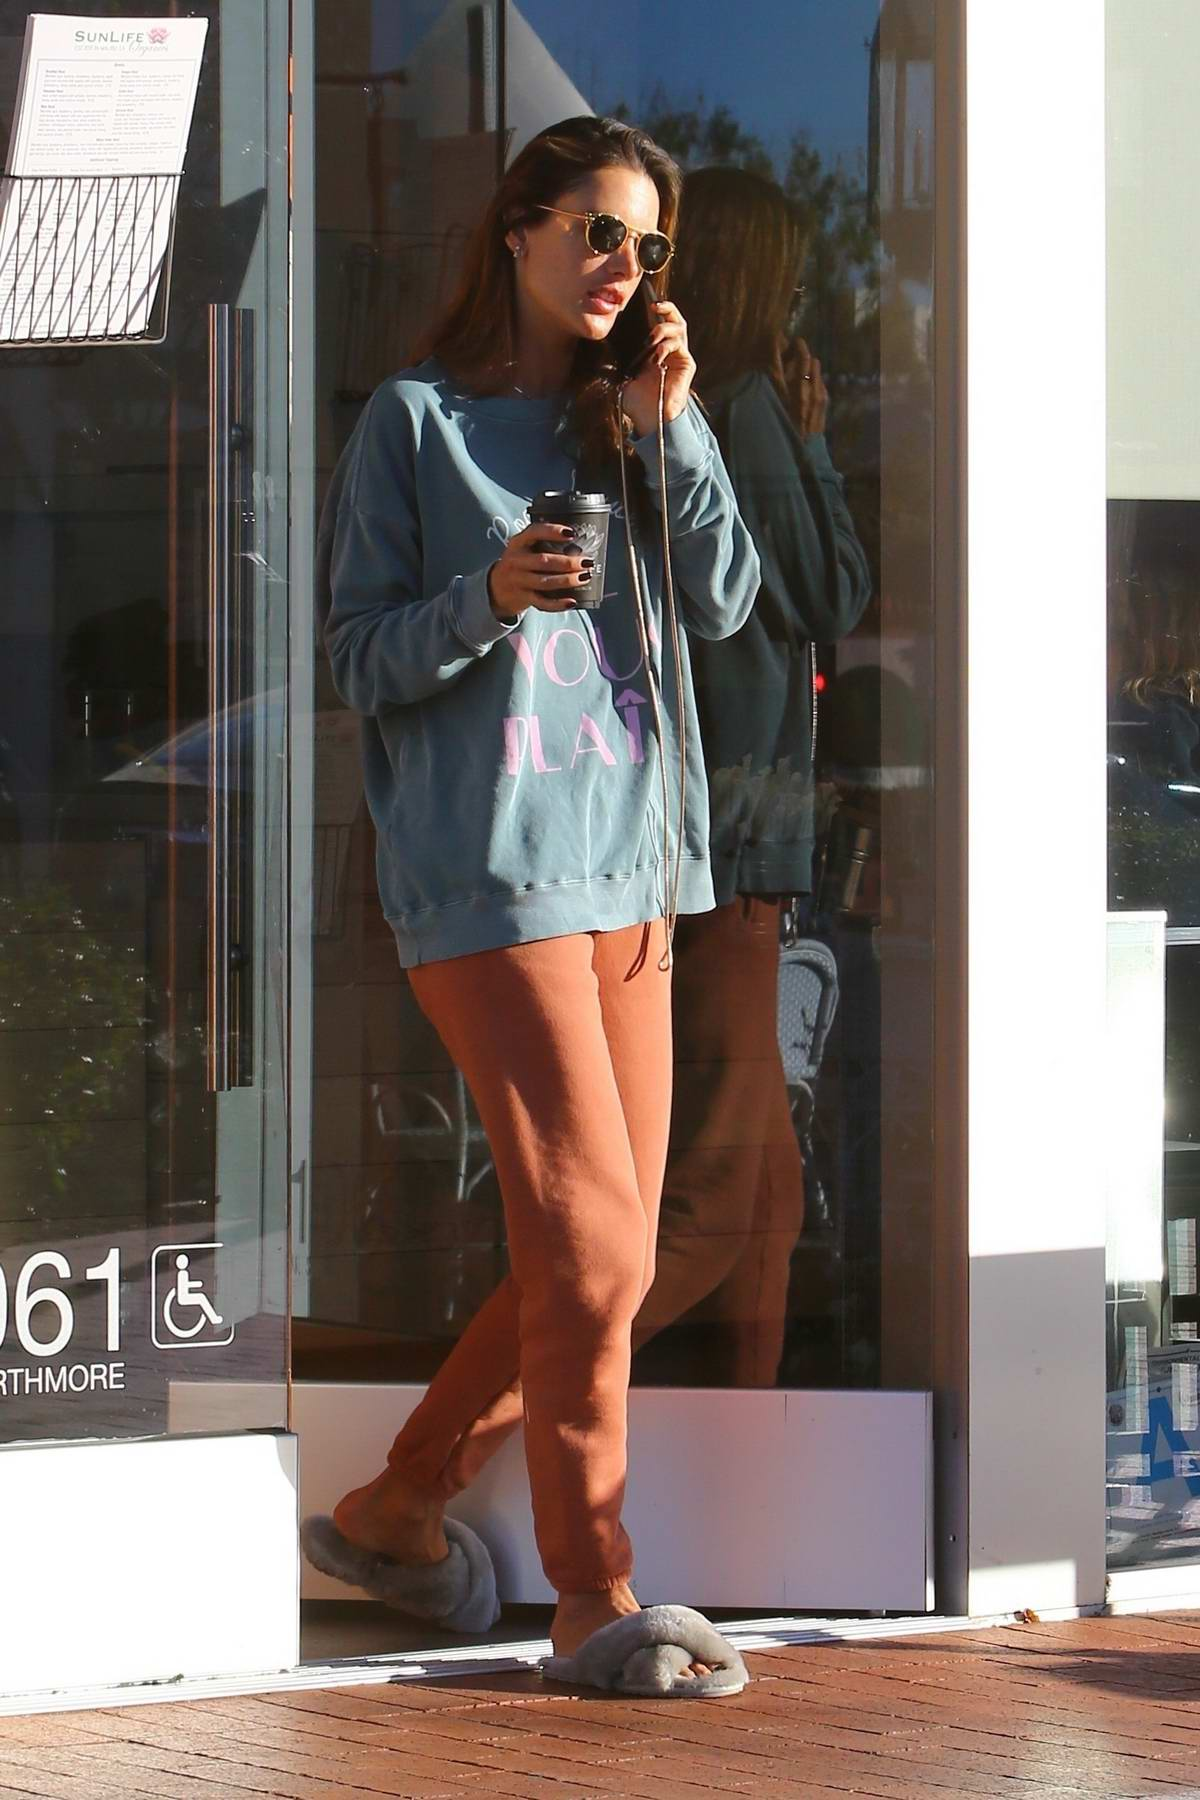 Alessandra Ambrosio looks comfy in sweats while out out for a coffee at Sunlife Organics in Pacific Palisades, California